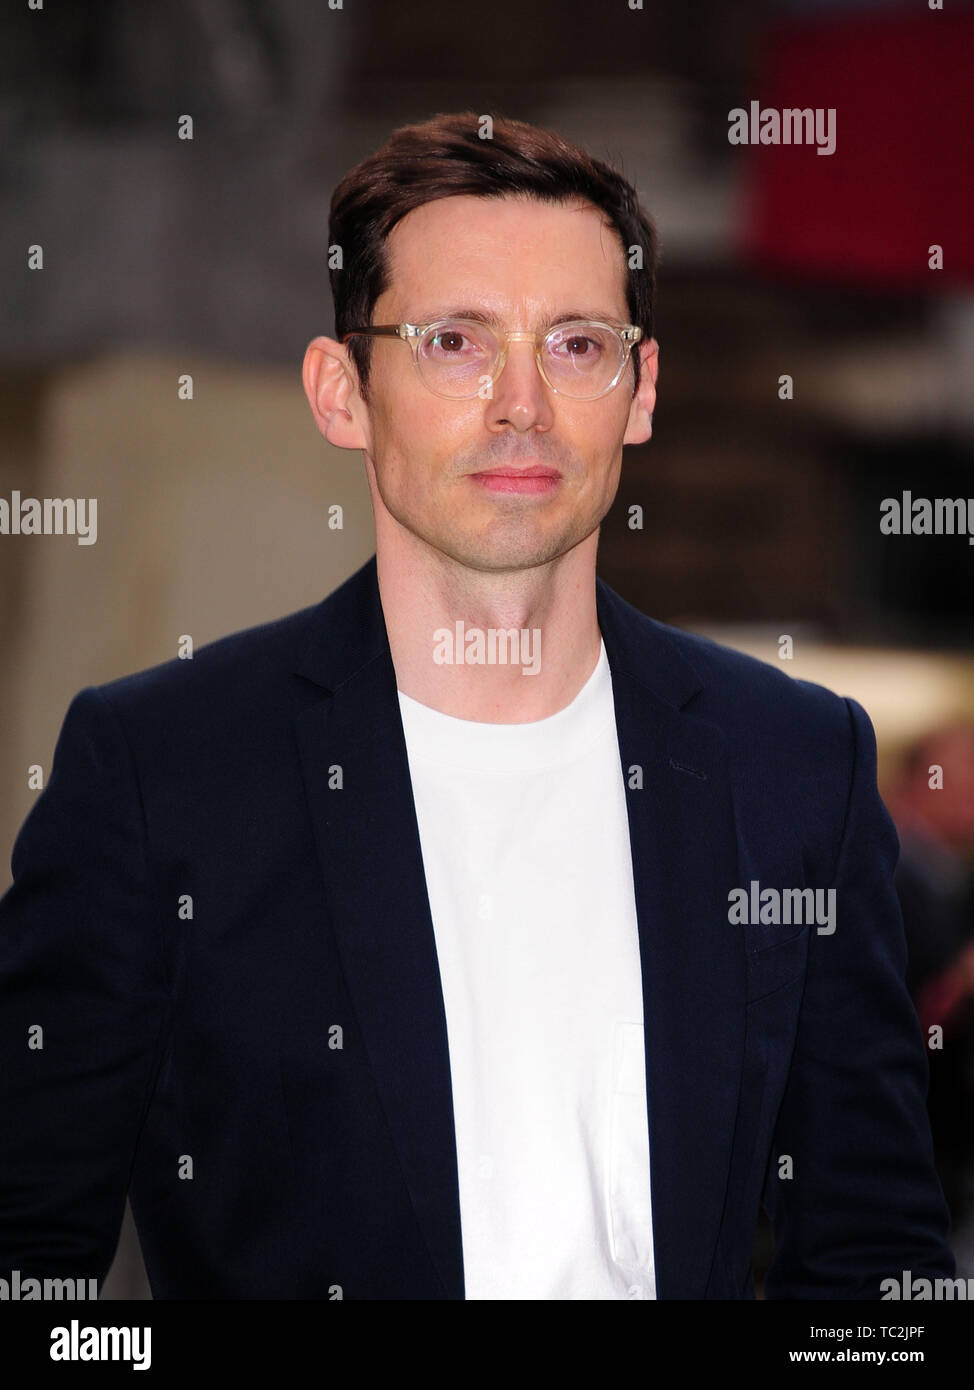 The  Royal Academy of Arts Summer Exhibition Preview Party VIP Guests Erdem Moralioglu - Stock Image